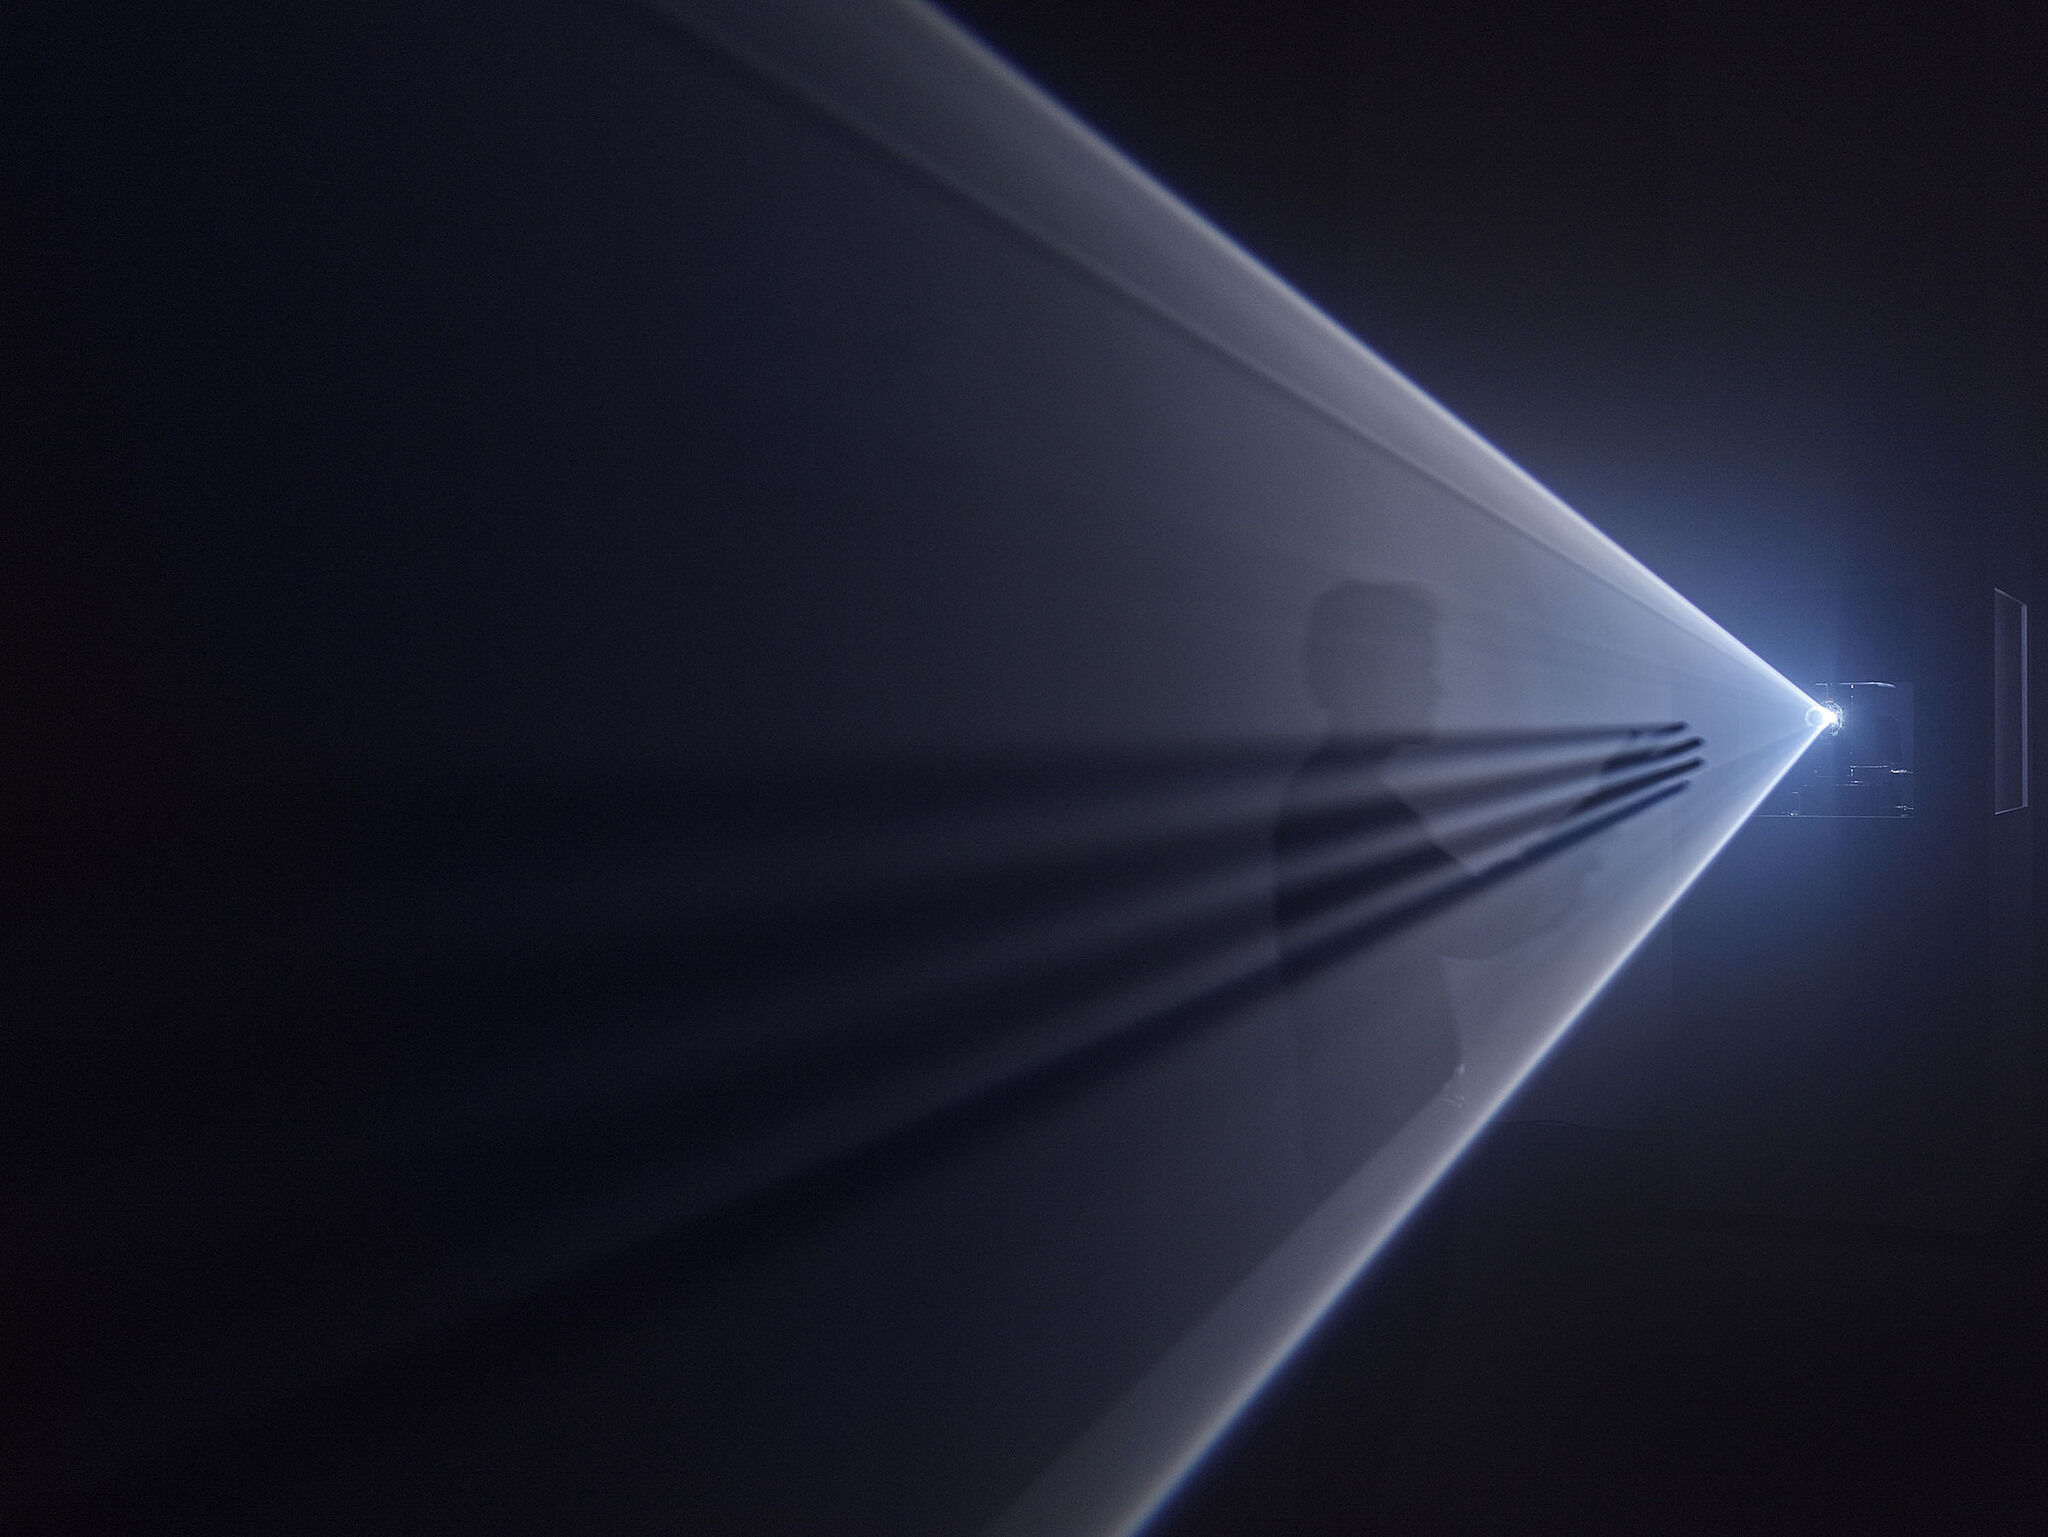 A person stands in the middle of a beam of light from a projector.